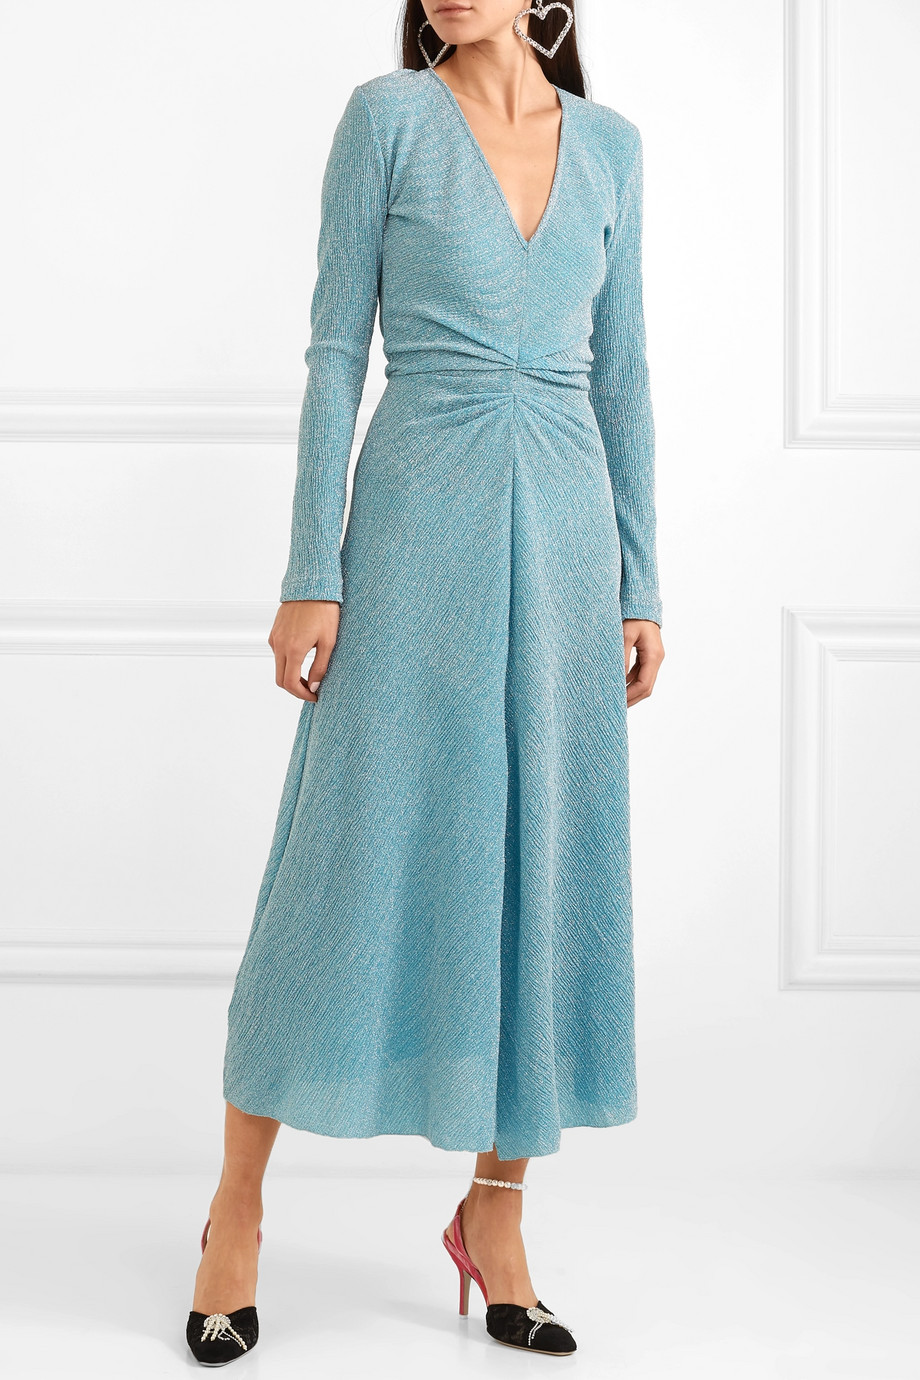 blue rotate dress with v neckline and long sleeves